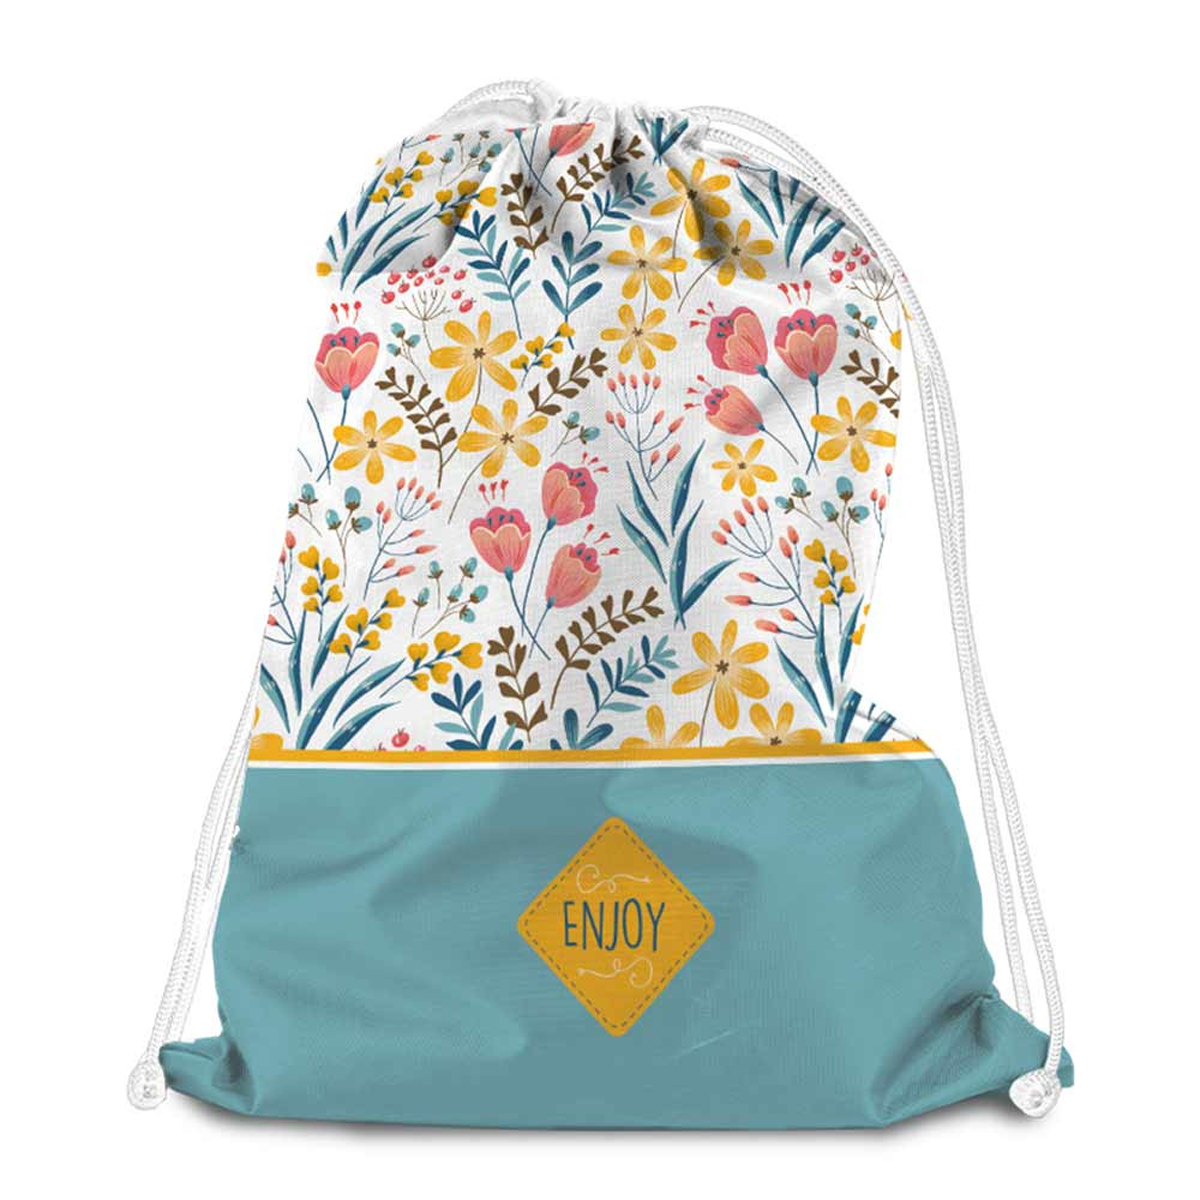 Sac de détente \'Liberty\' turquoise jaune multicolore (Enjoy) - 38x34 cm - [Q8009]